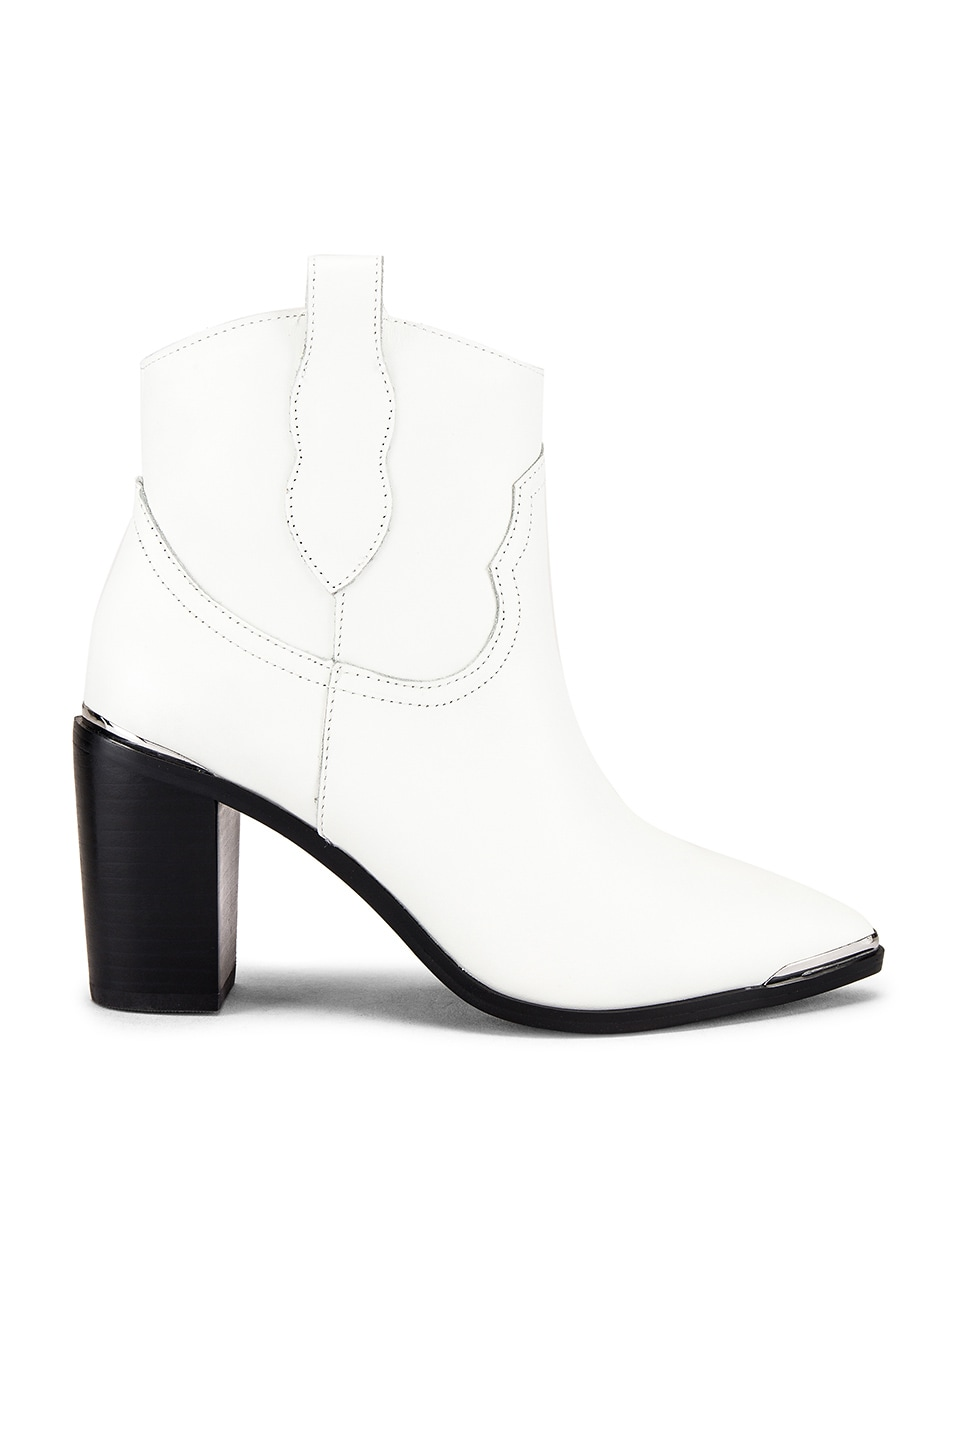 Steve Madden Zora Ankle Boot in White